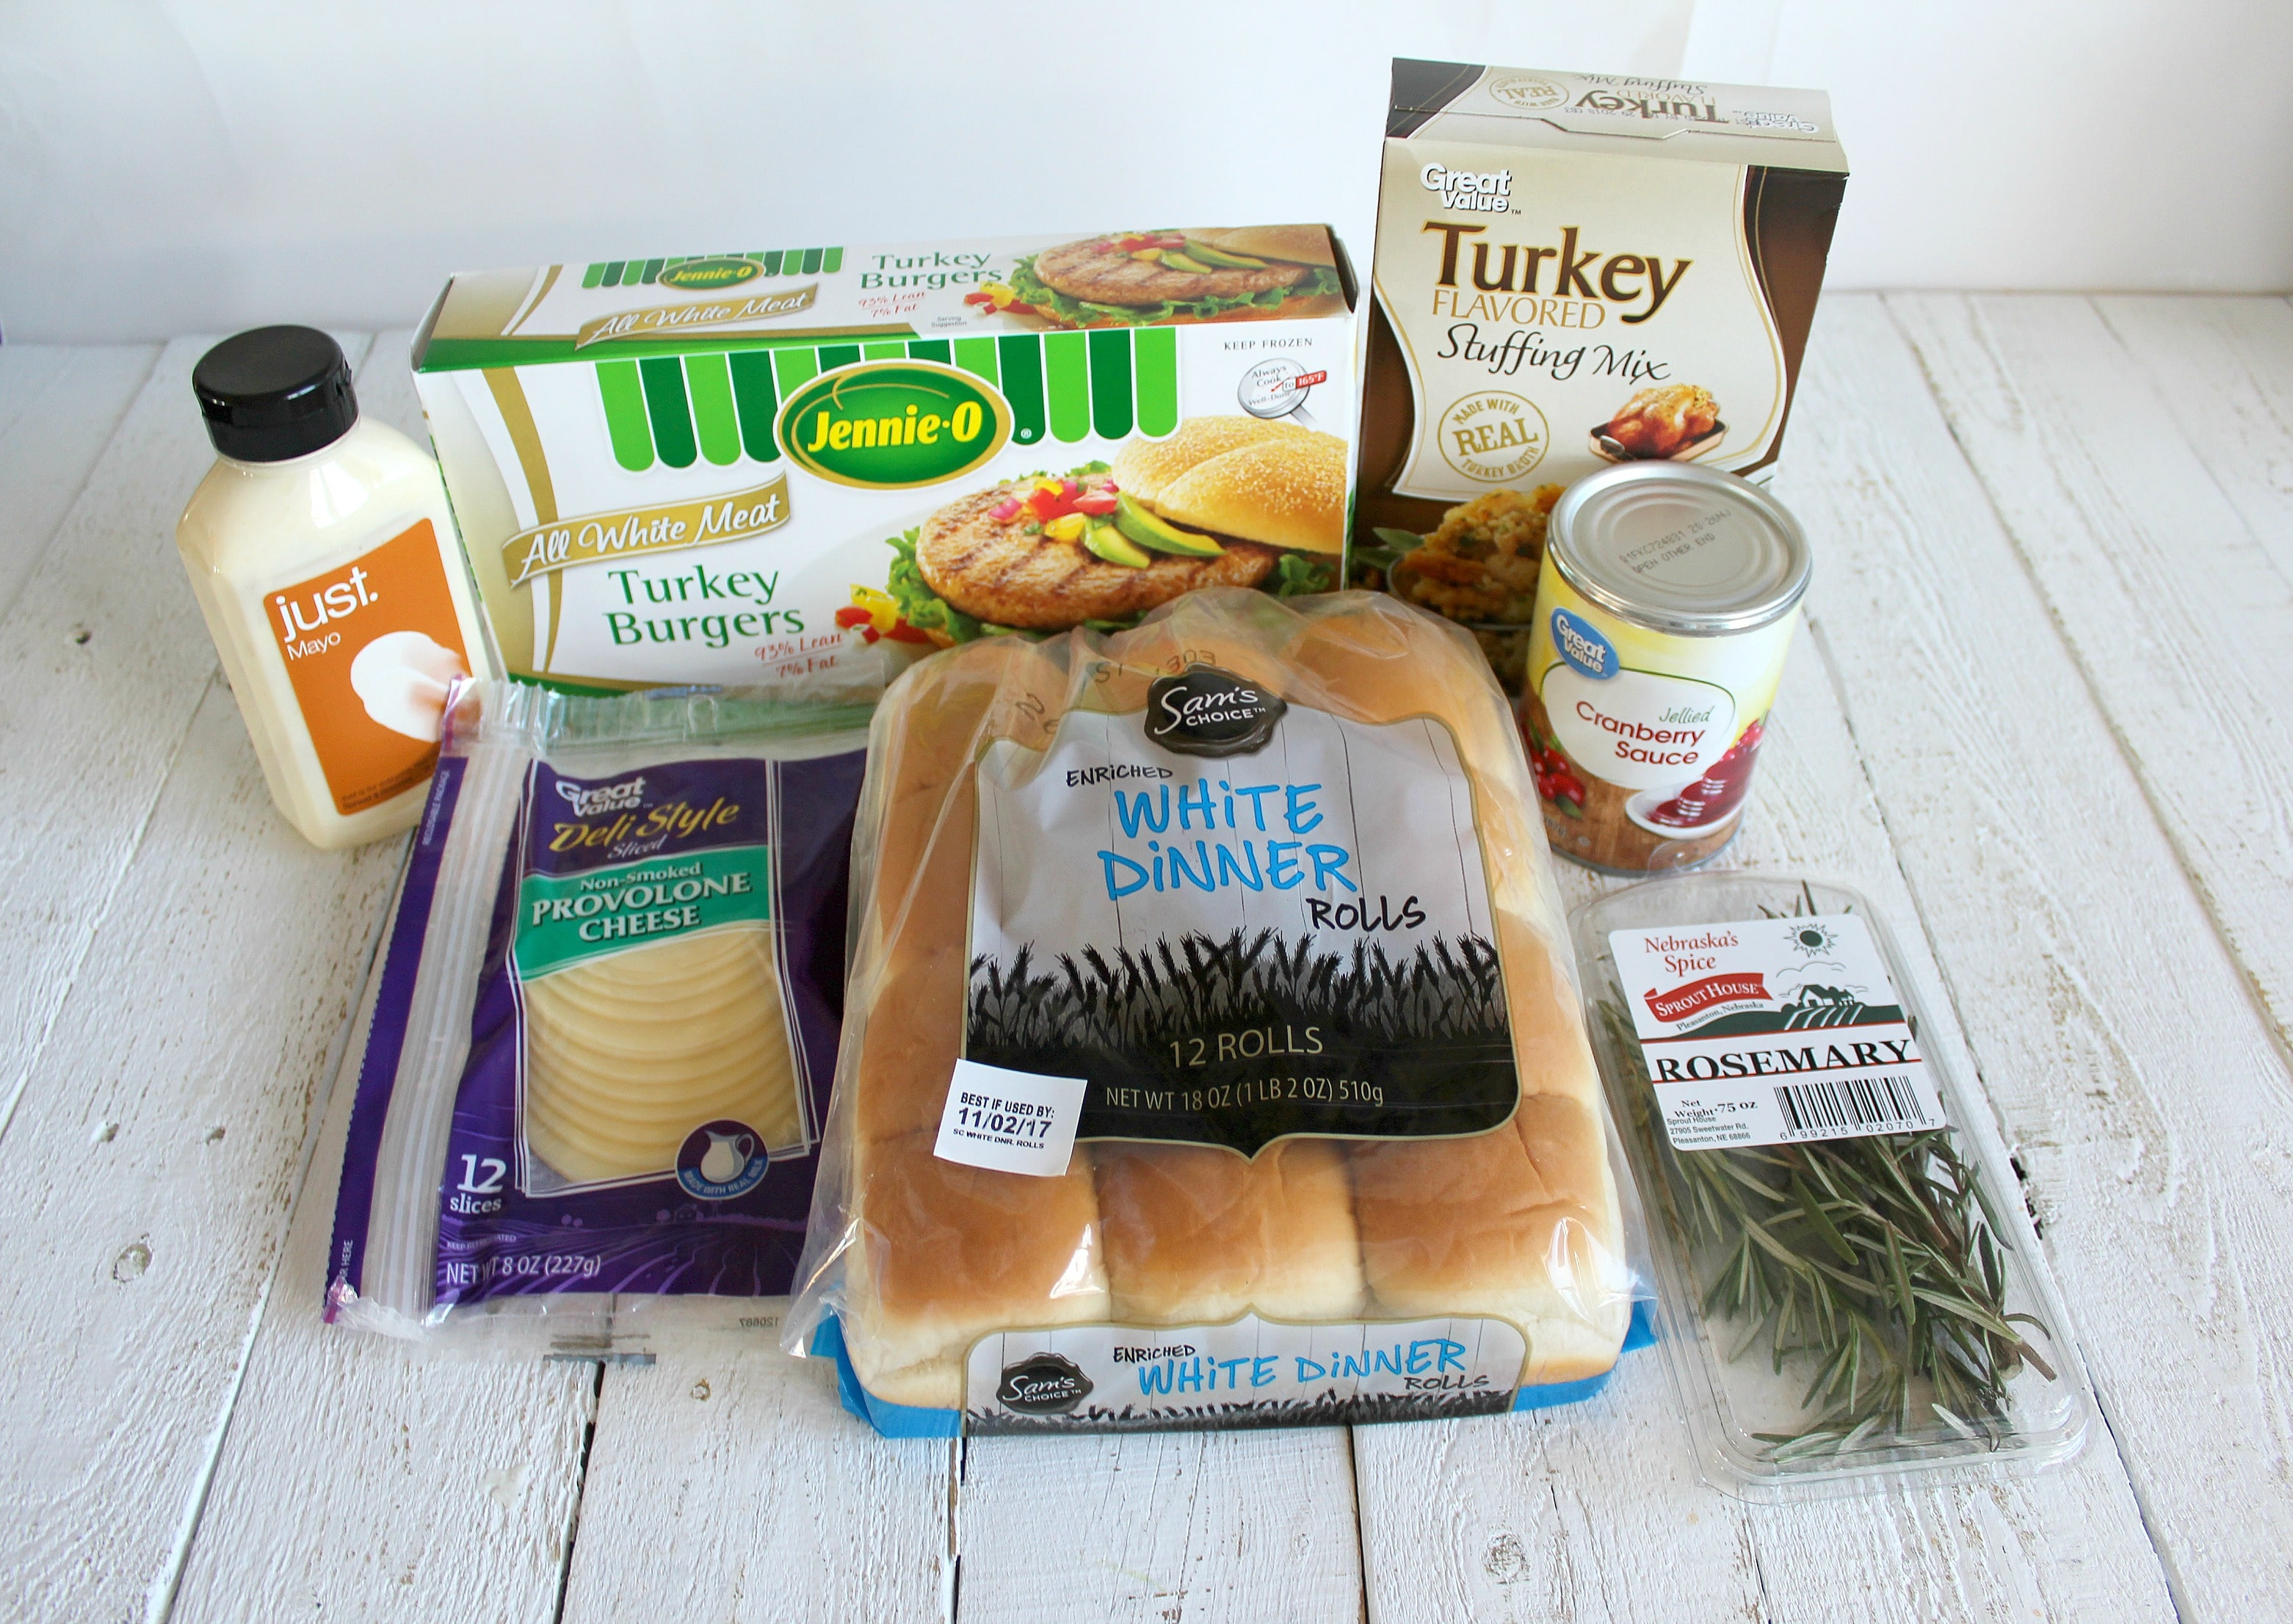 Assemble your Thanksgiving slider ingredients: frozen turkey burgers, stuffing mix, cranberry sauce, dinner rolls, provolone cheese slices, mayo and rosemary.